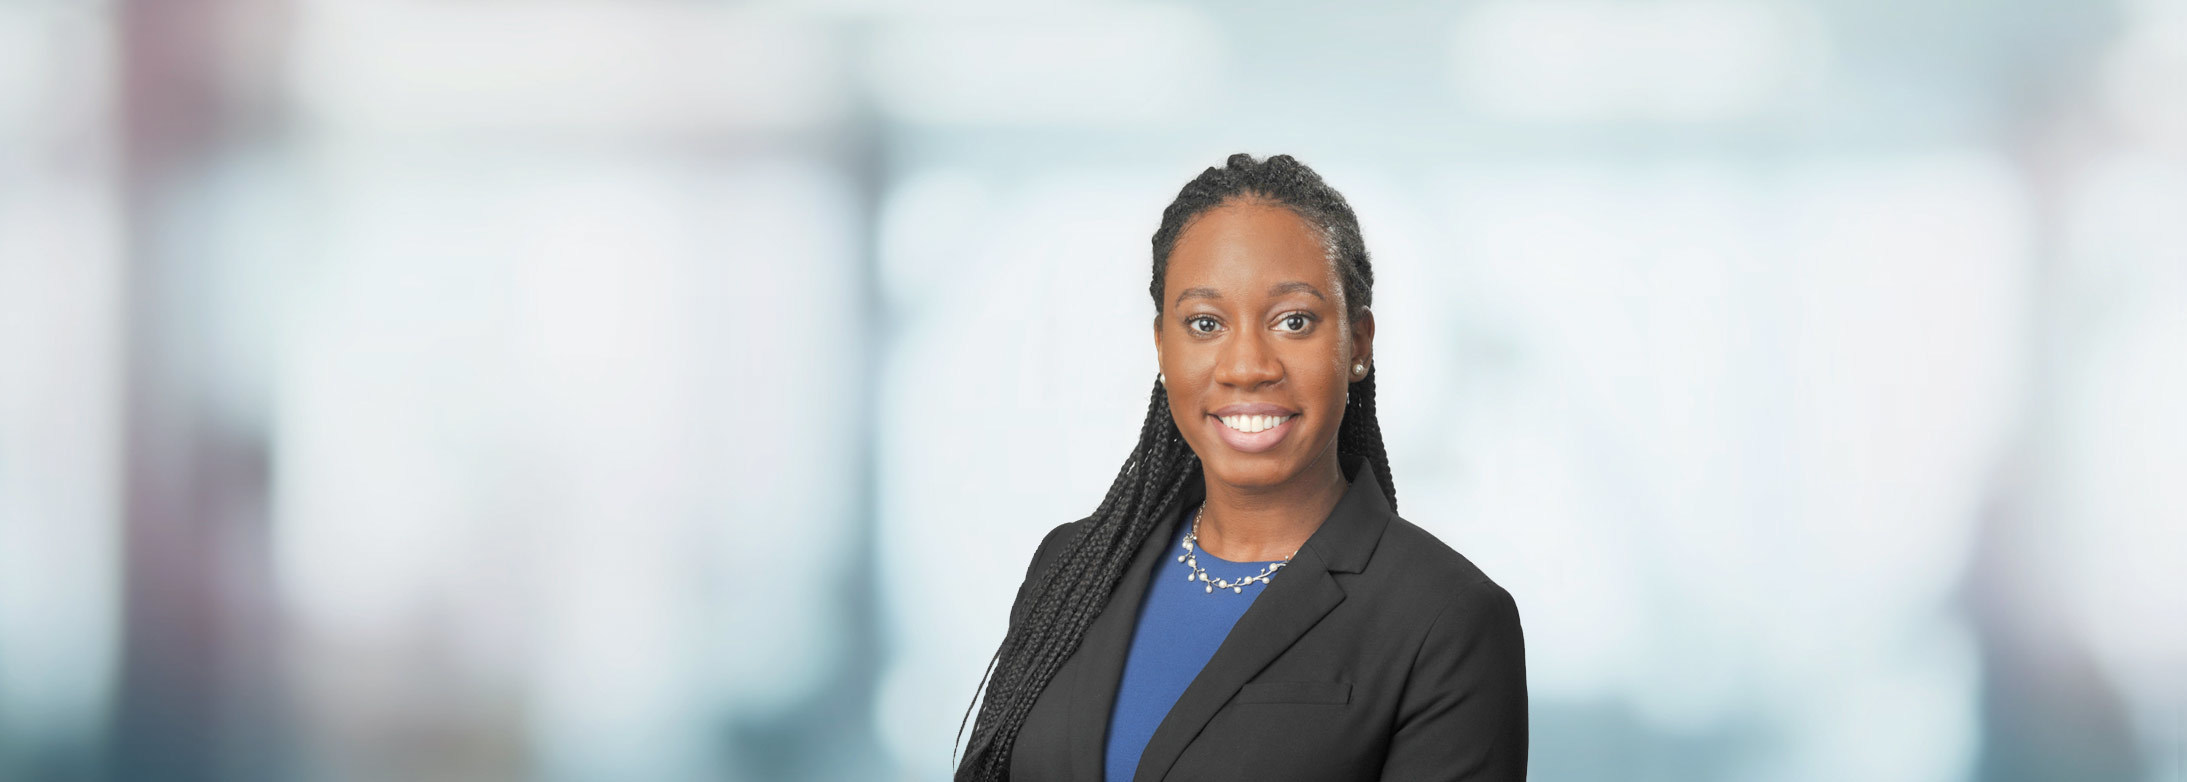 Anelise Codrington, Swift, Currie, McGhee & Hiers, LLP Photo